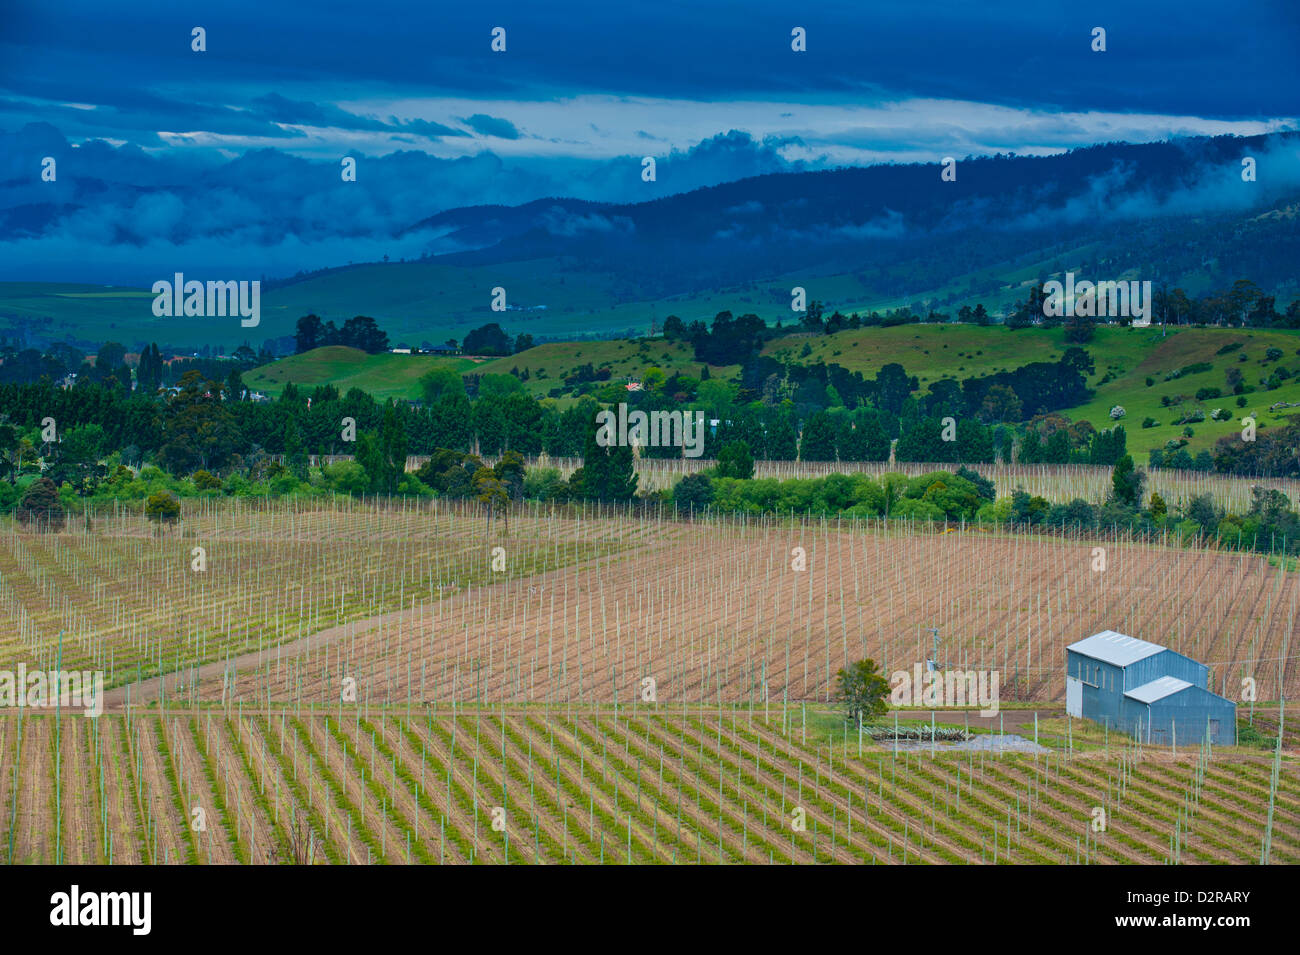 Little house in a agricultural field in Western Tasmania, Australia, Pacific - Stock Image